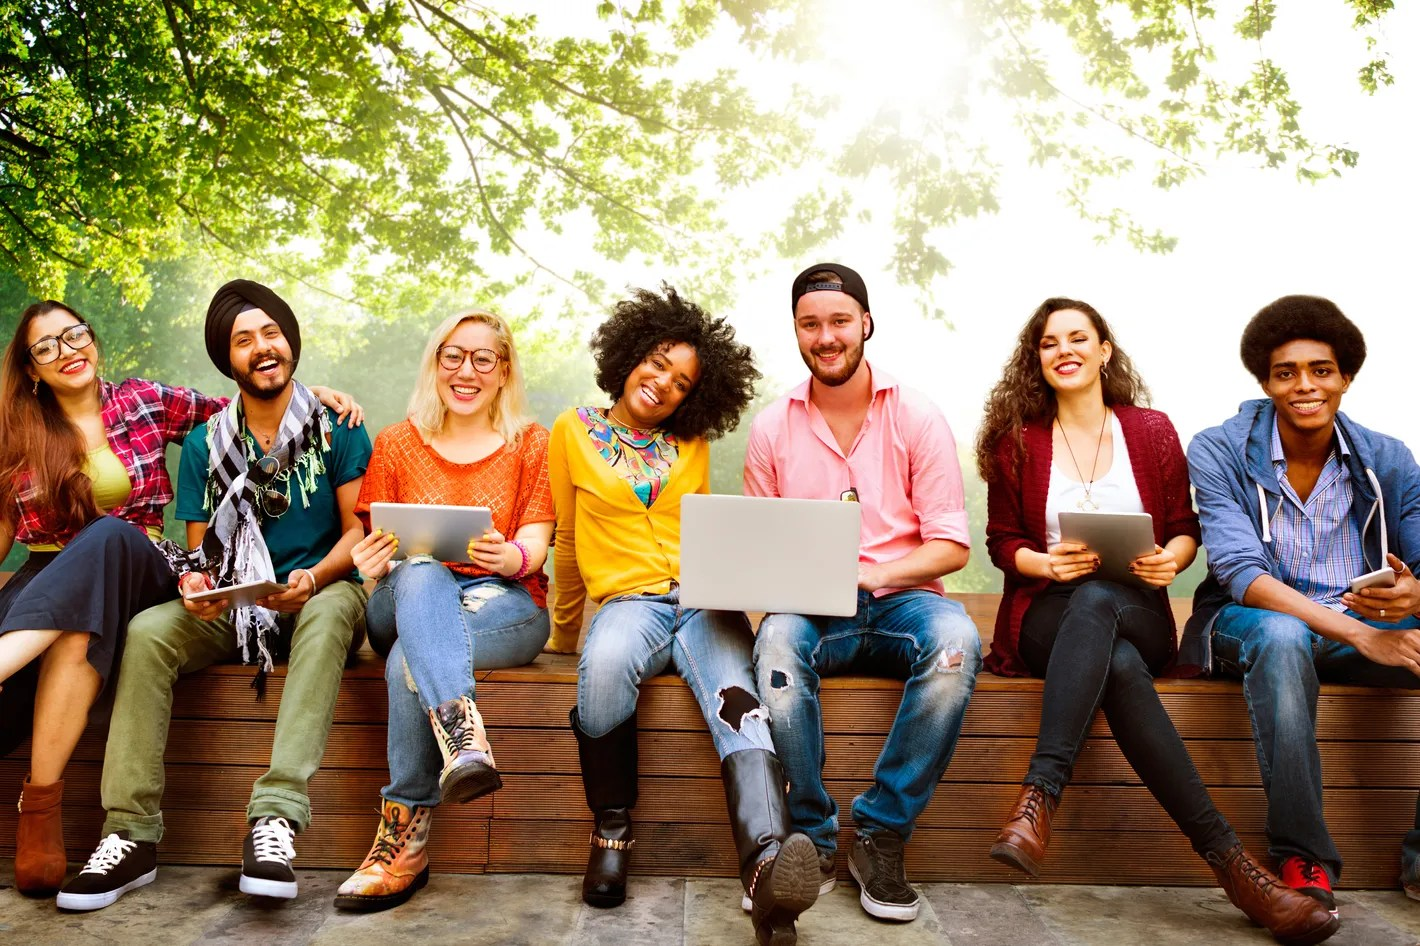 4 Benefits To Having A Diverse Friend Group